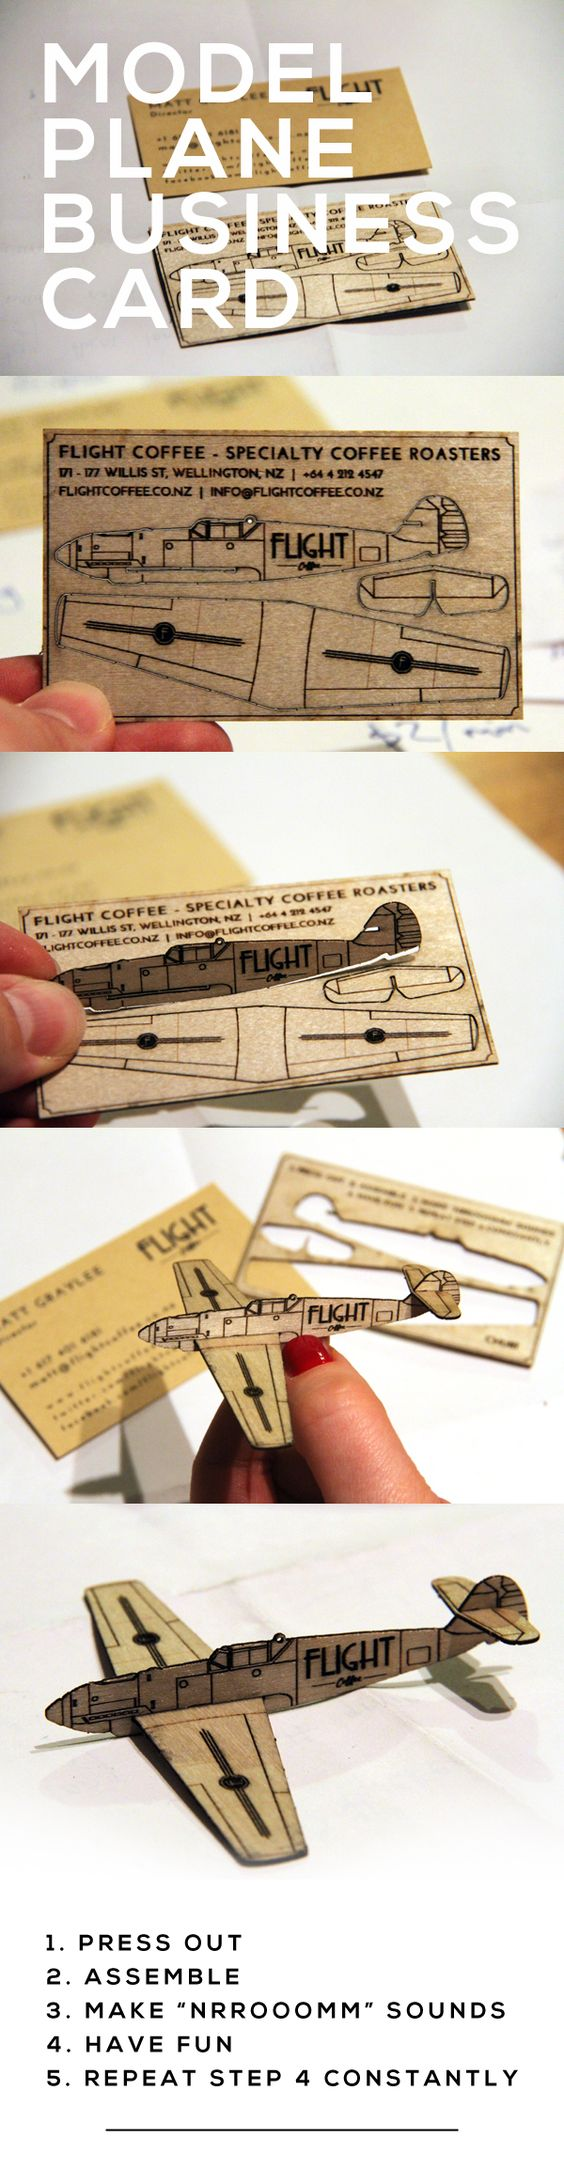 "Flight Coffee's new business cards are a little model planes! Laser cut wood 0.9mm plywood, with instructions that call for you to:  1. Press out  2. Assemble  3. Make ""nrrooomm"" sounds  4. Have fun  5. Repeat step 4 constantly!   Why do average when you can do awesome instead?    Best business cards"